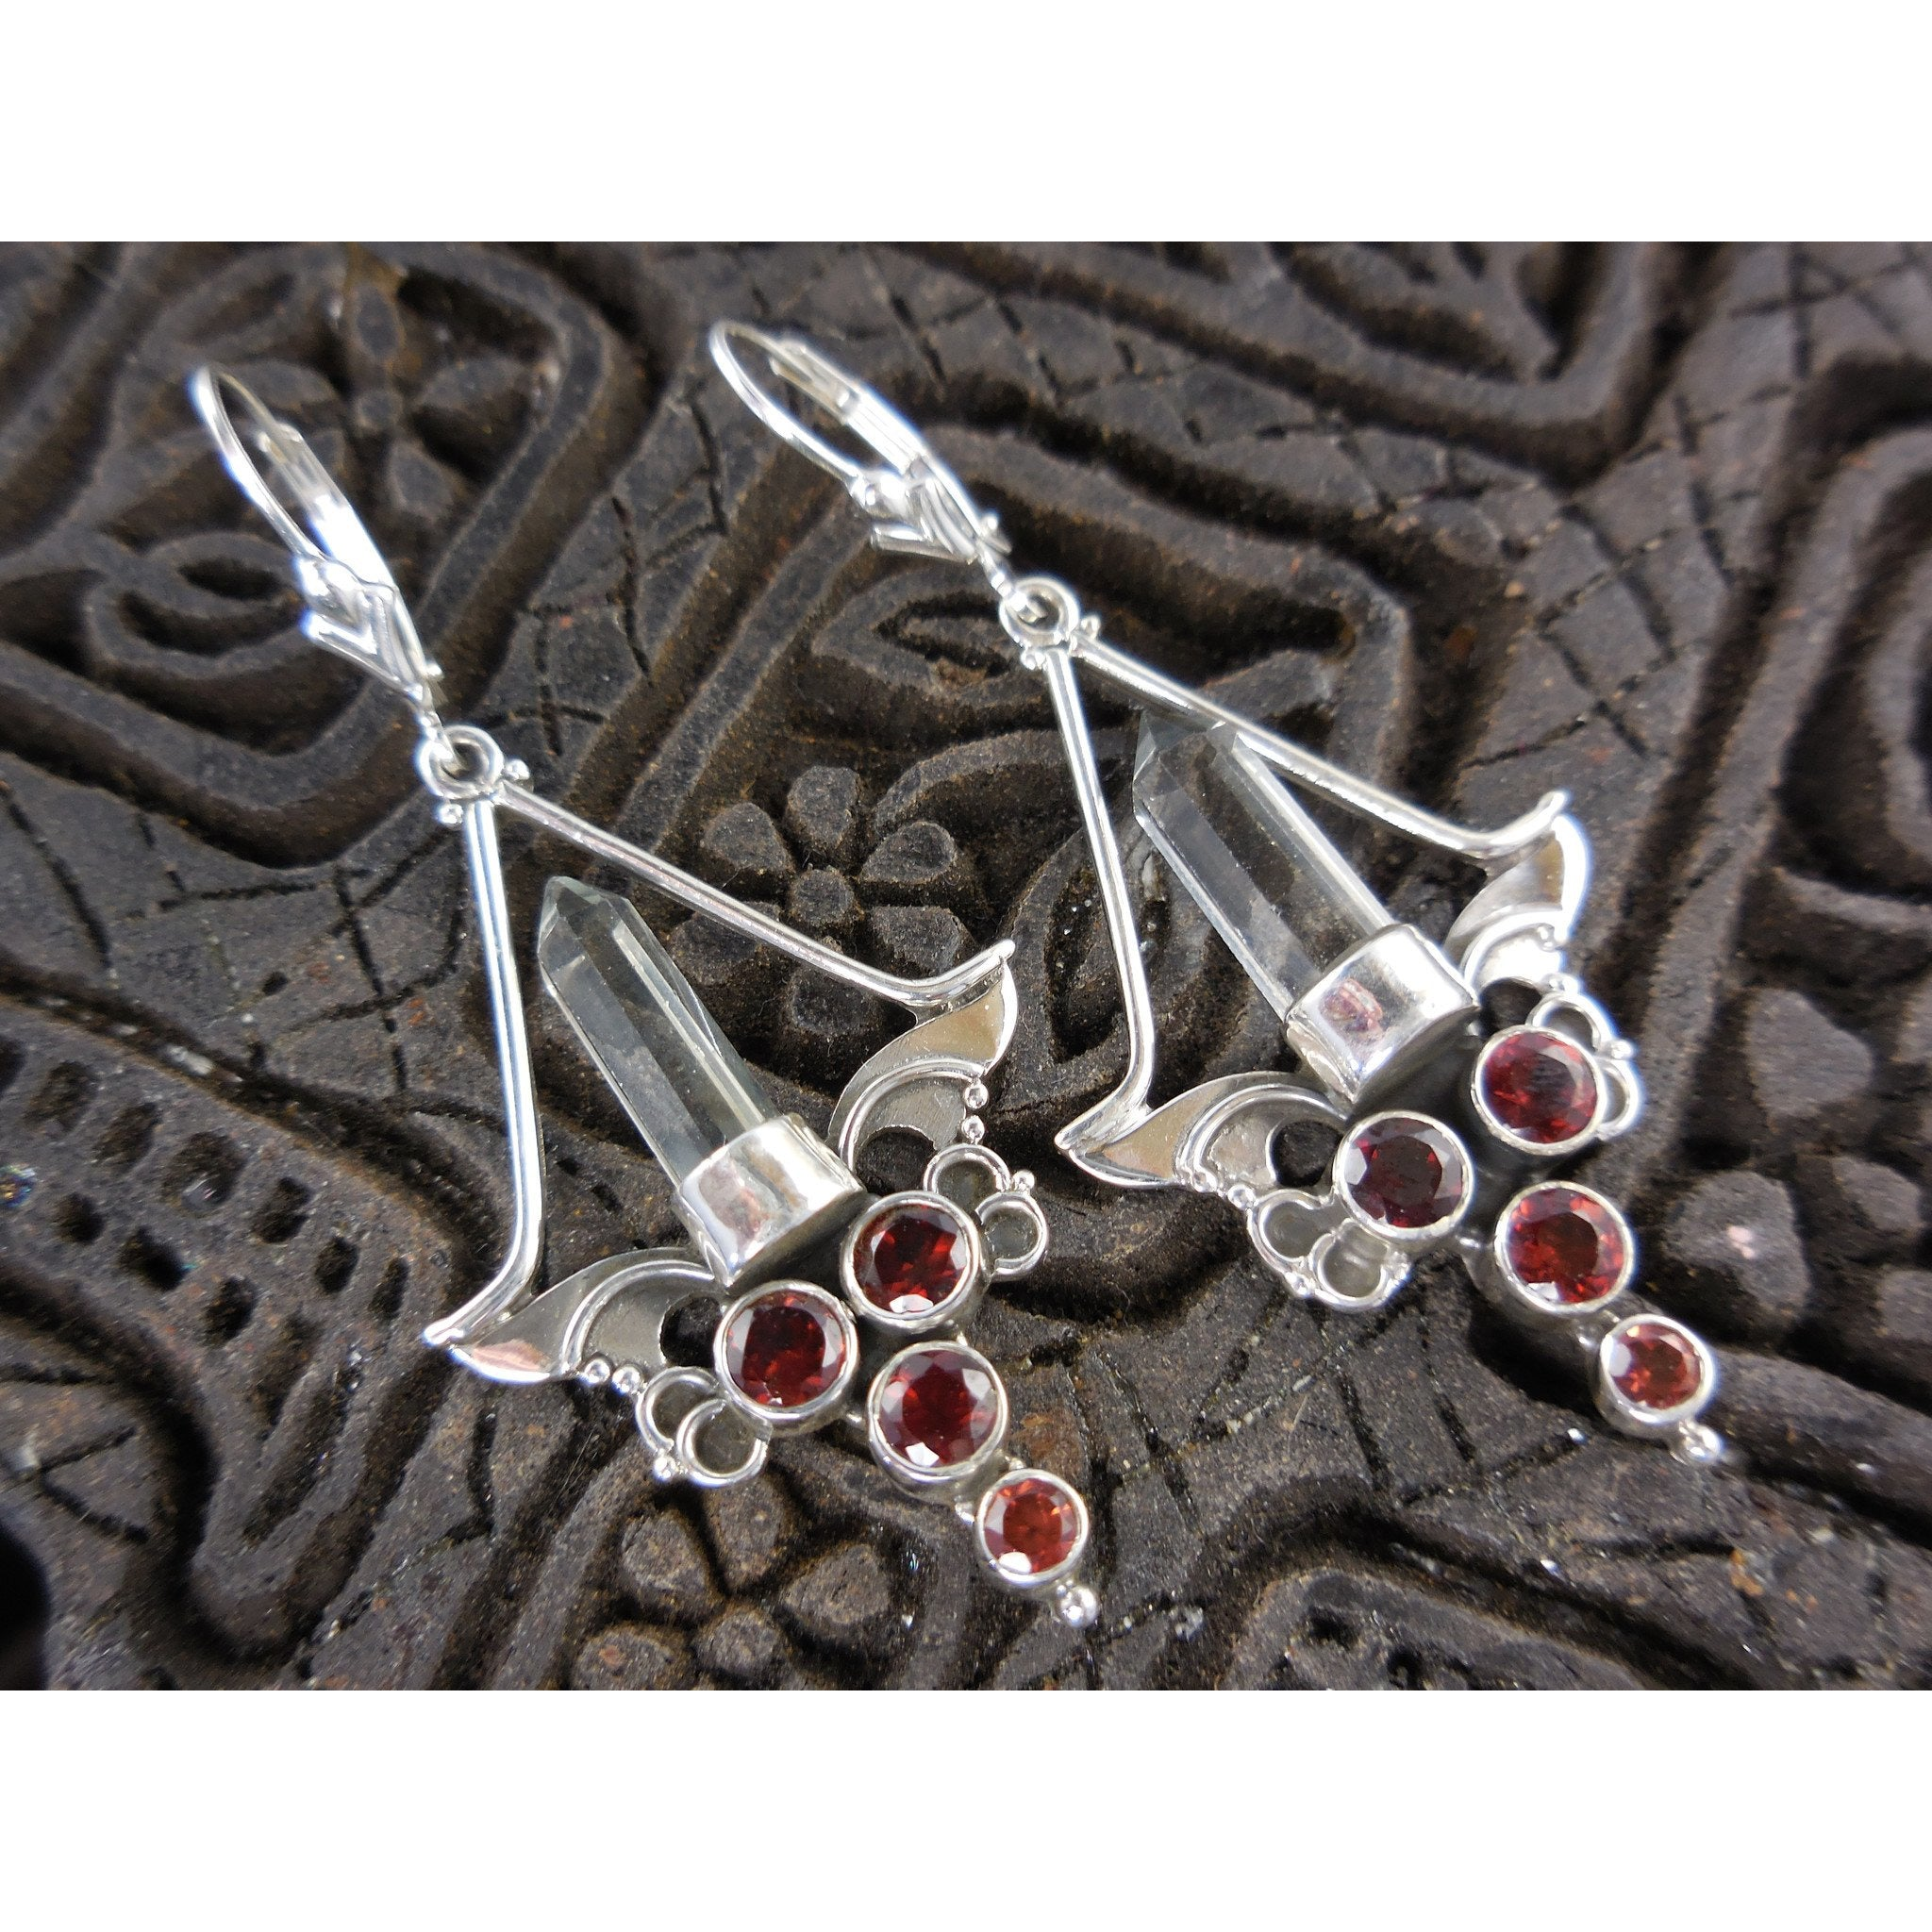 Garnet herkimer diamond quartz sterling silver chandelier garnet herkimer diamond quartz sterling silver chandelier earrings aloadofball Gallery